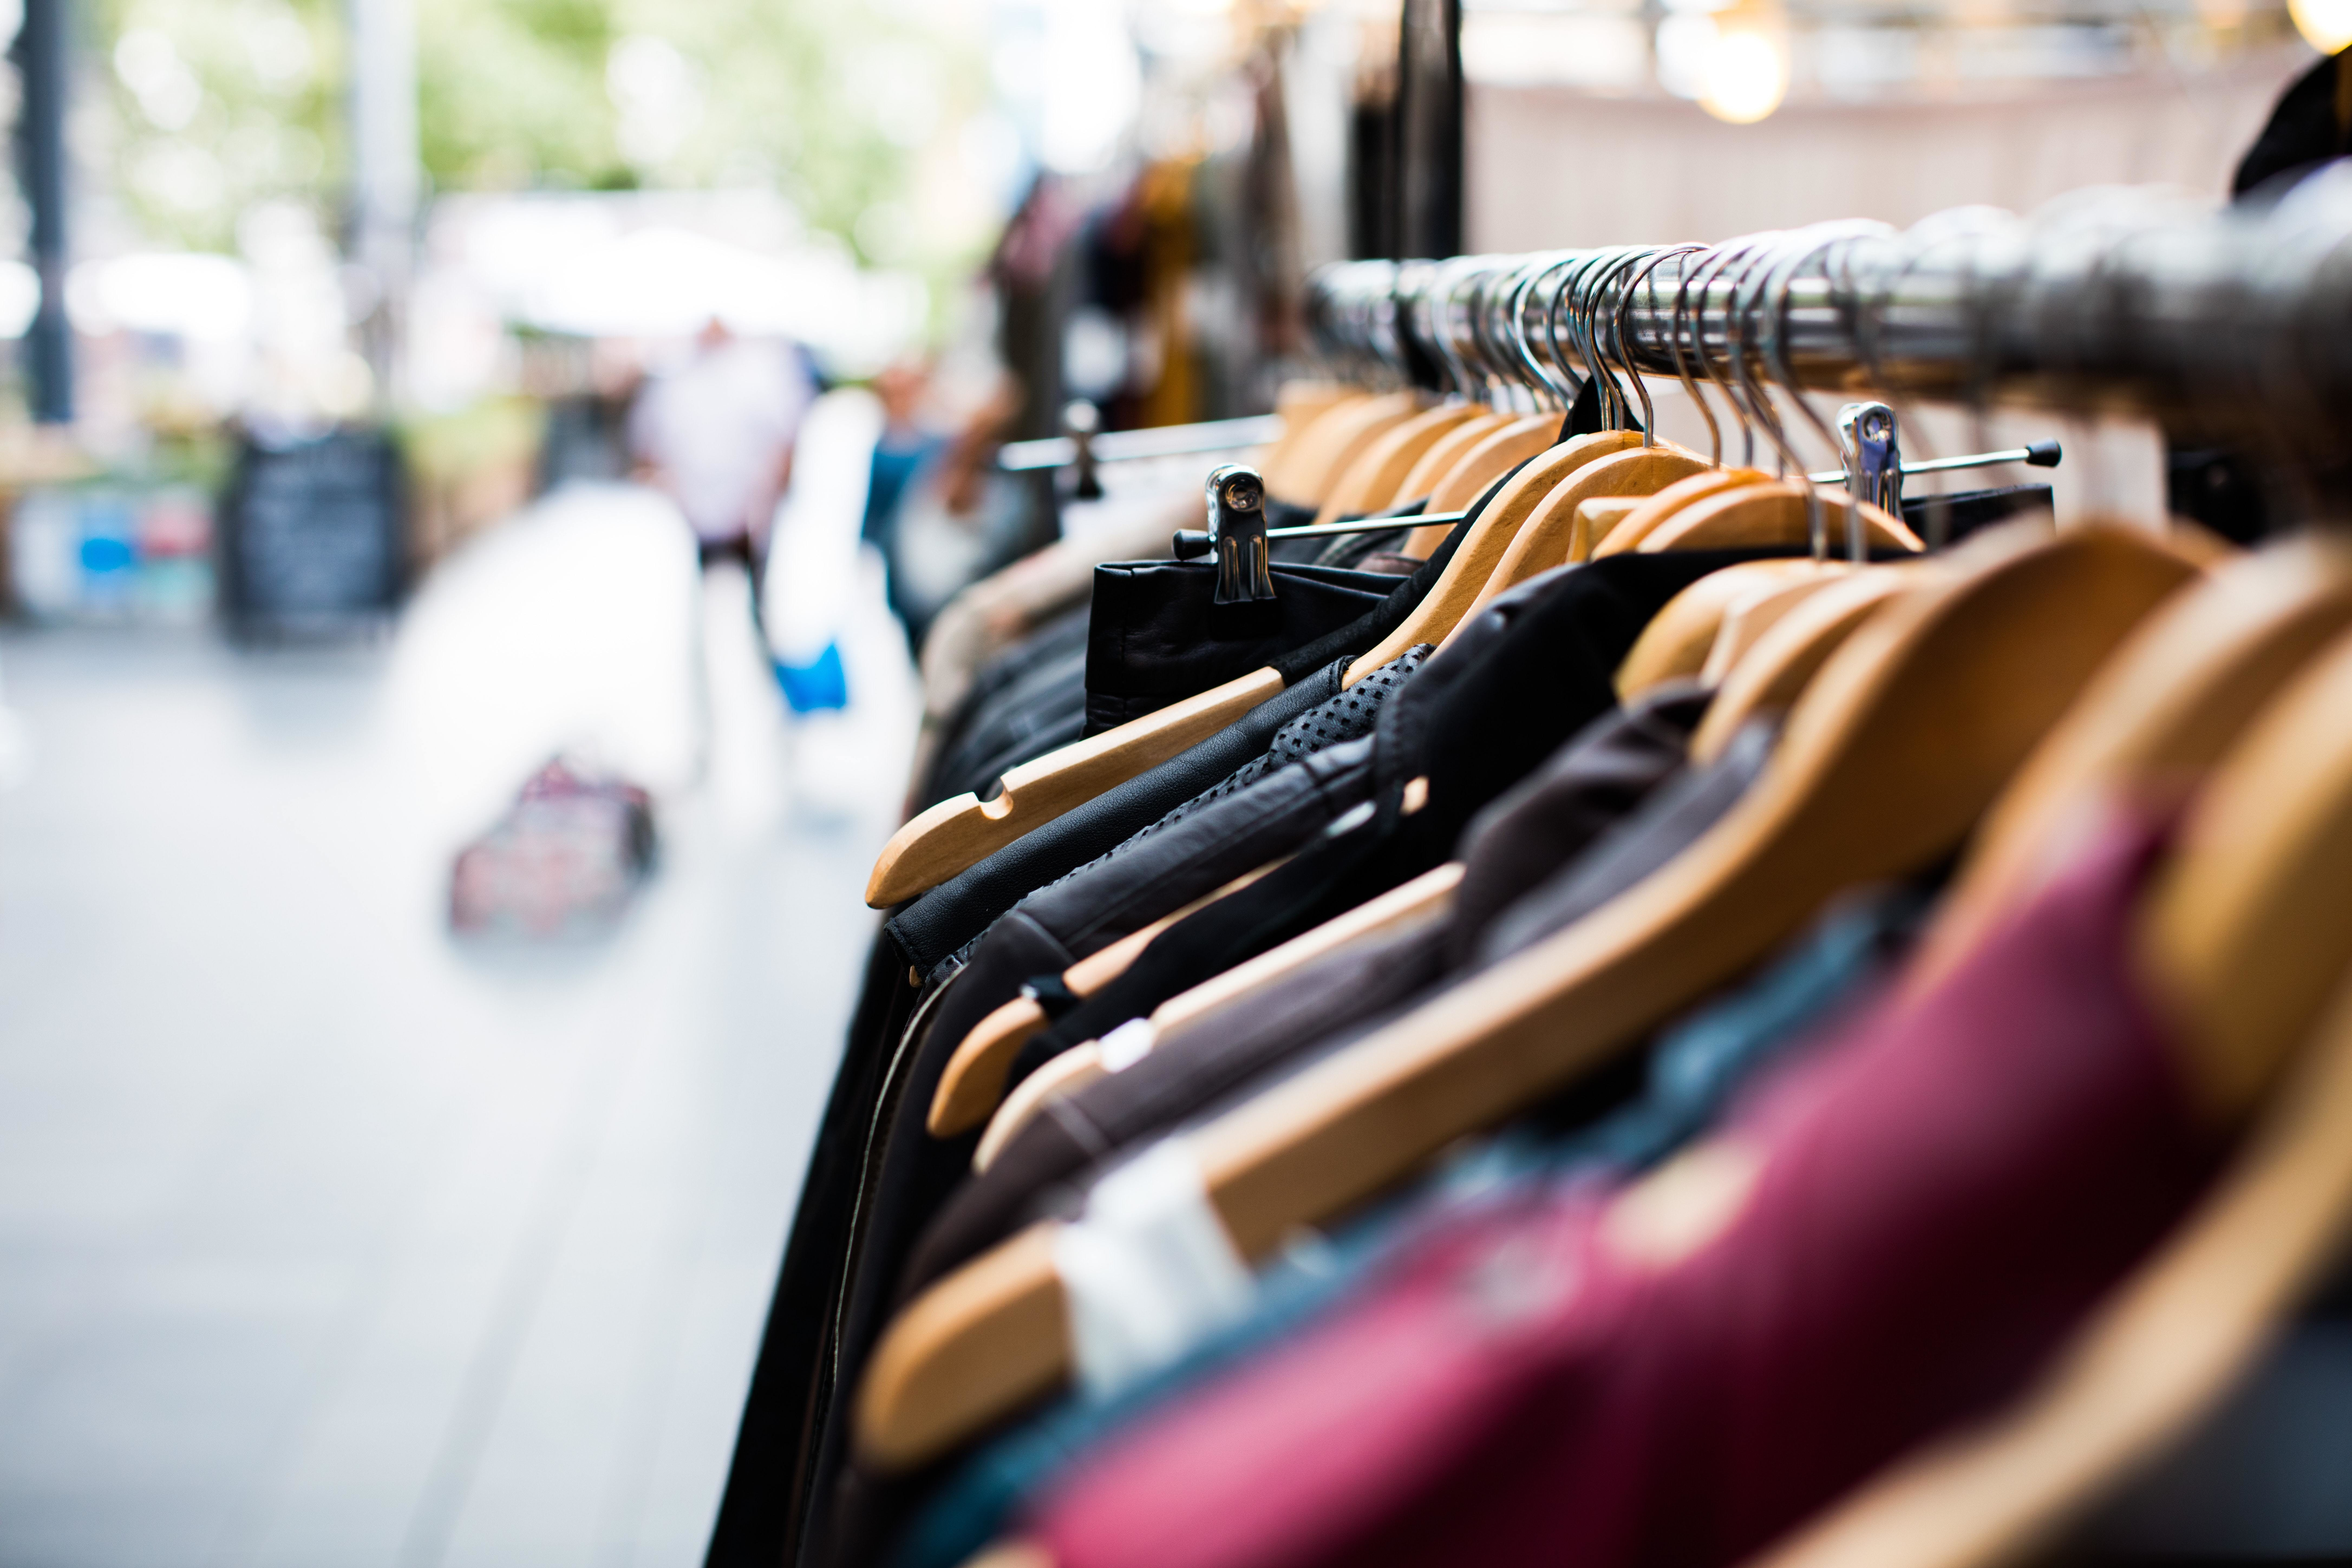 the retail sector, shown here with a rack of clothes, was hit particularly hard during COVID-19, which affected women who were more likely to be working in this sector